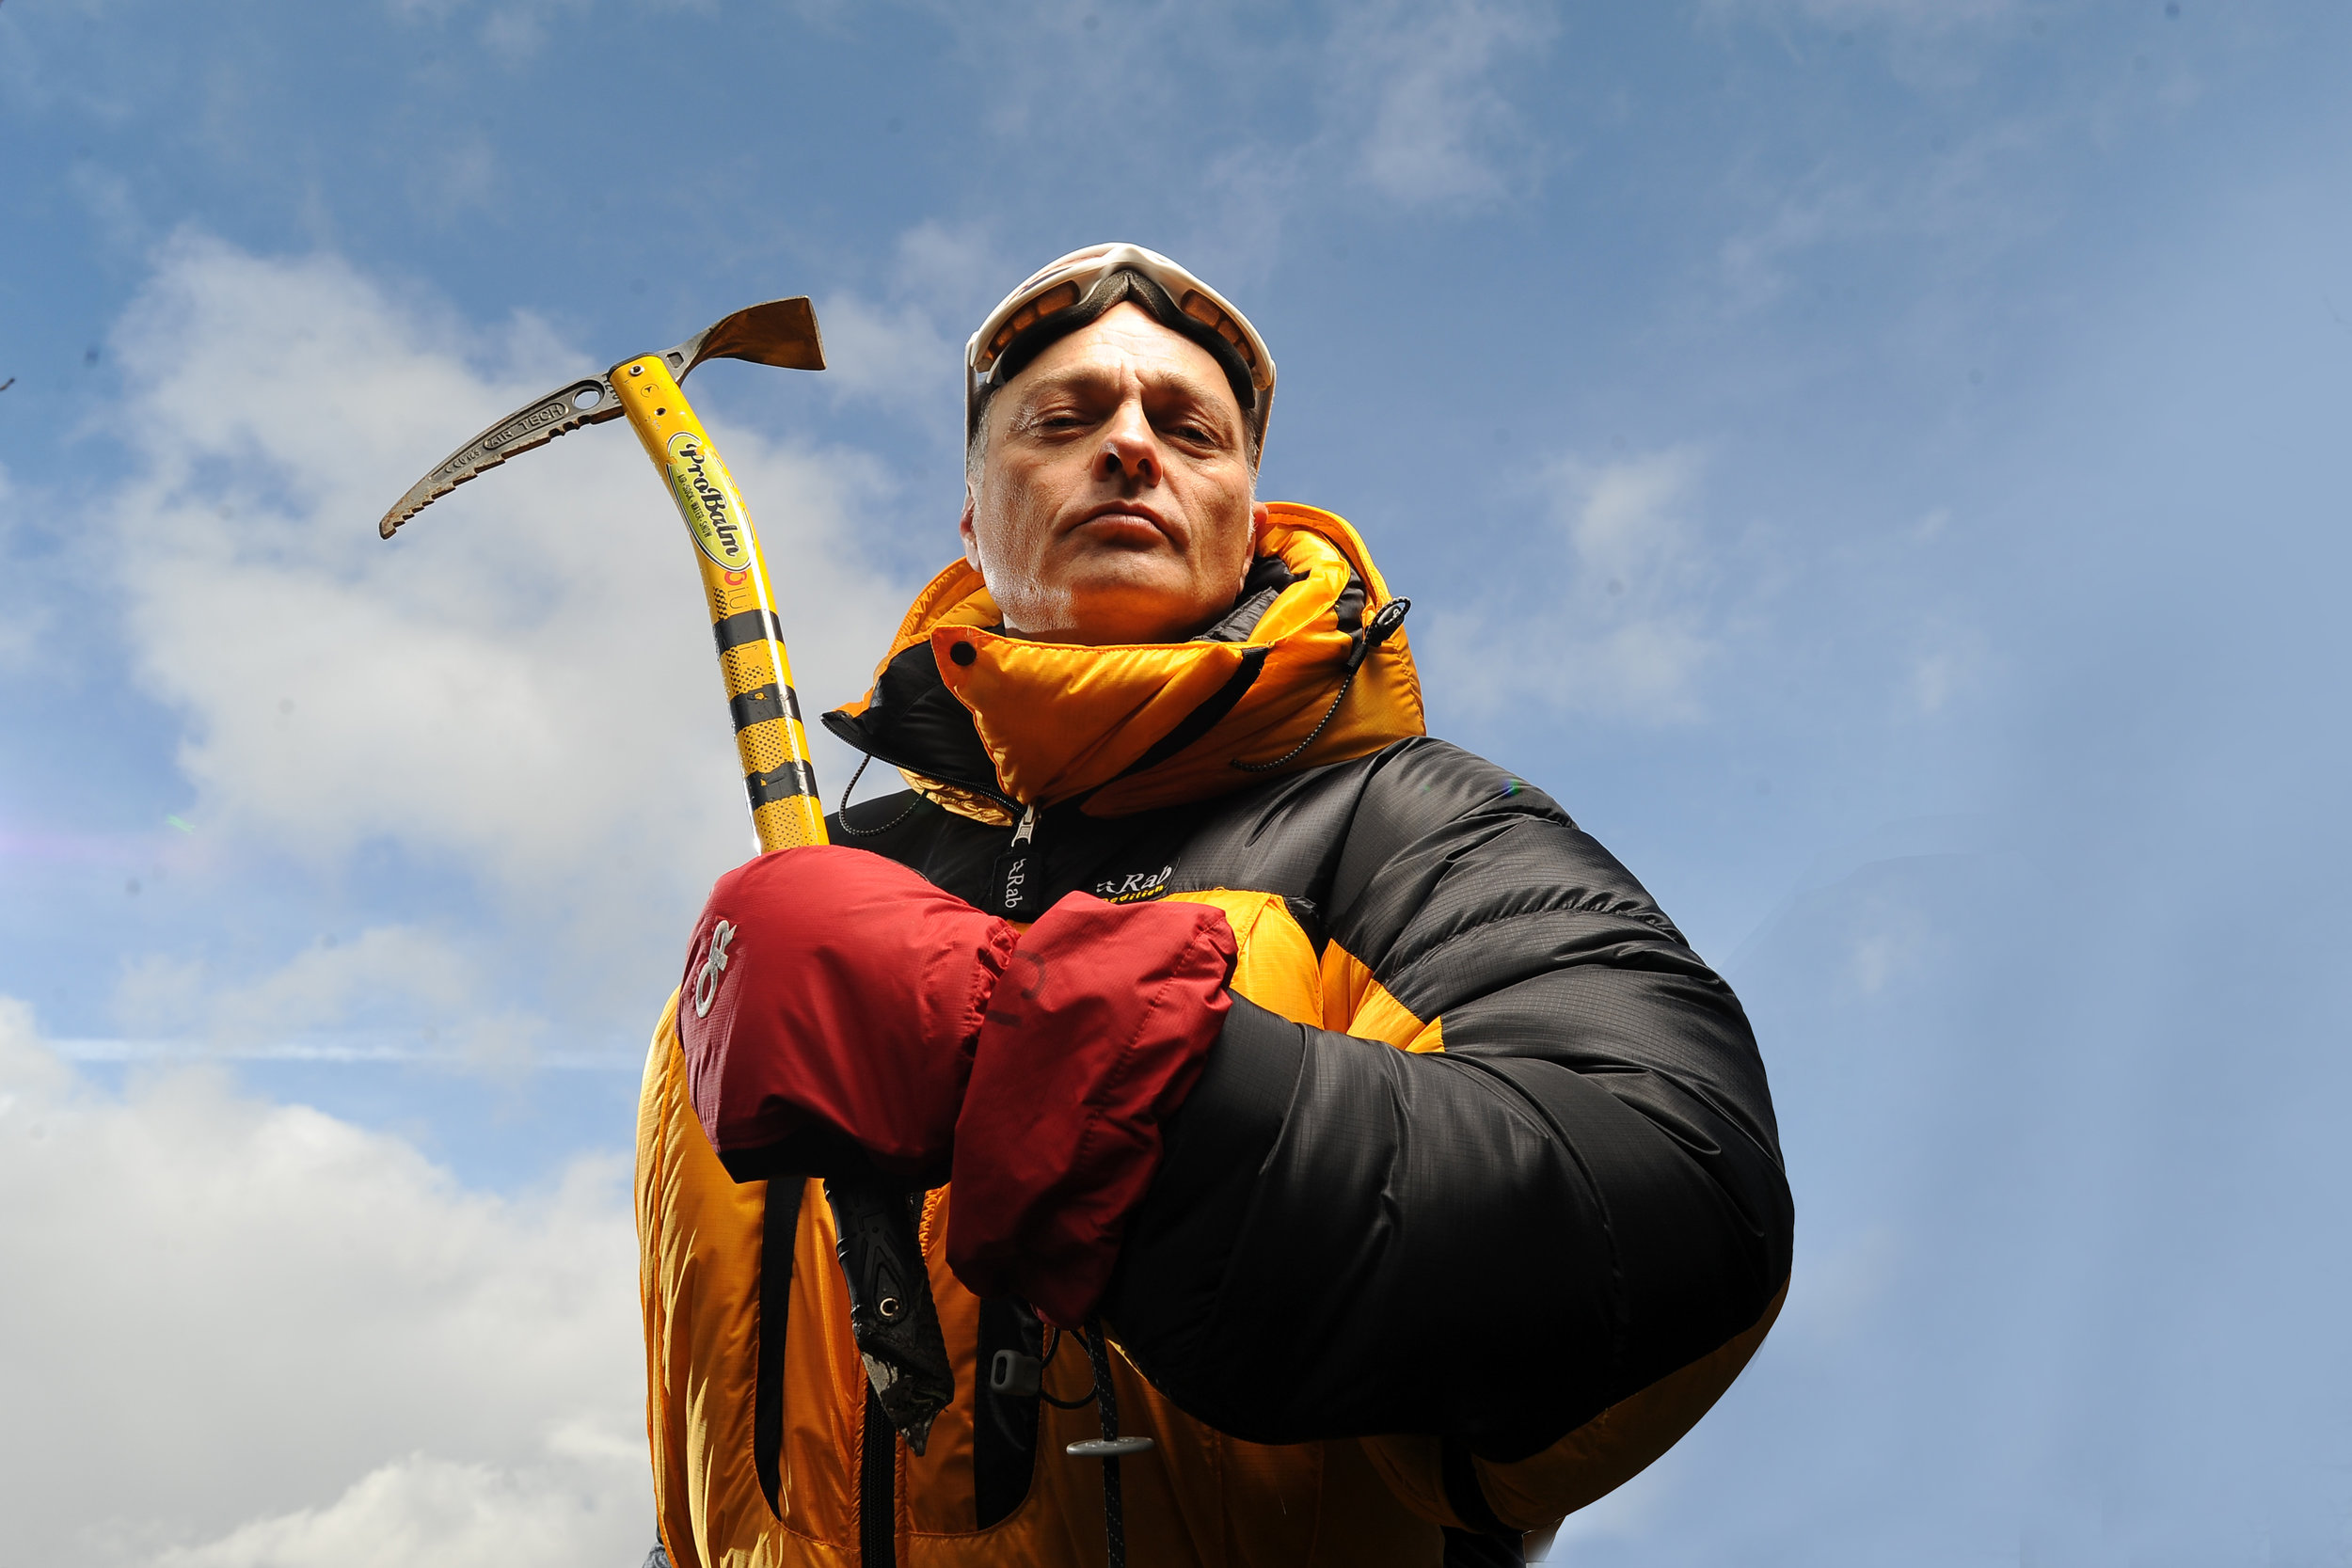 010213Adventurer Jeff Smith is going to climb Everest and paraglide off the top.PIC: Matthew Horwood / Media Wales